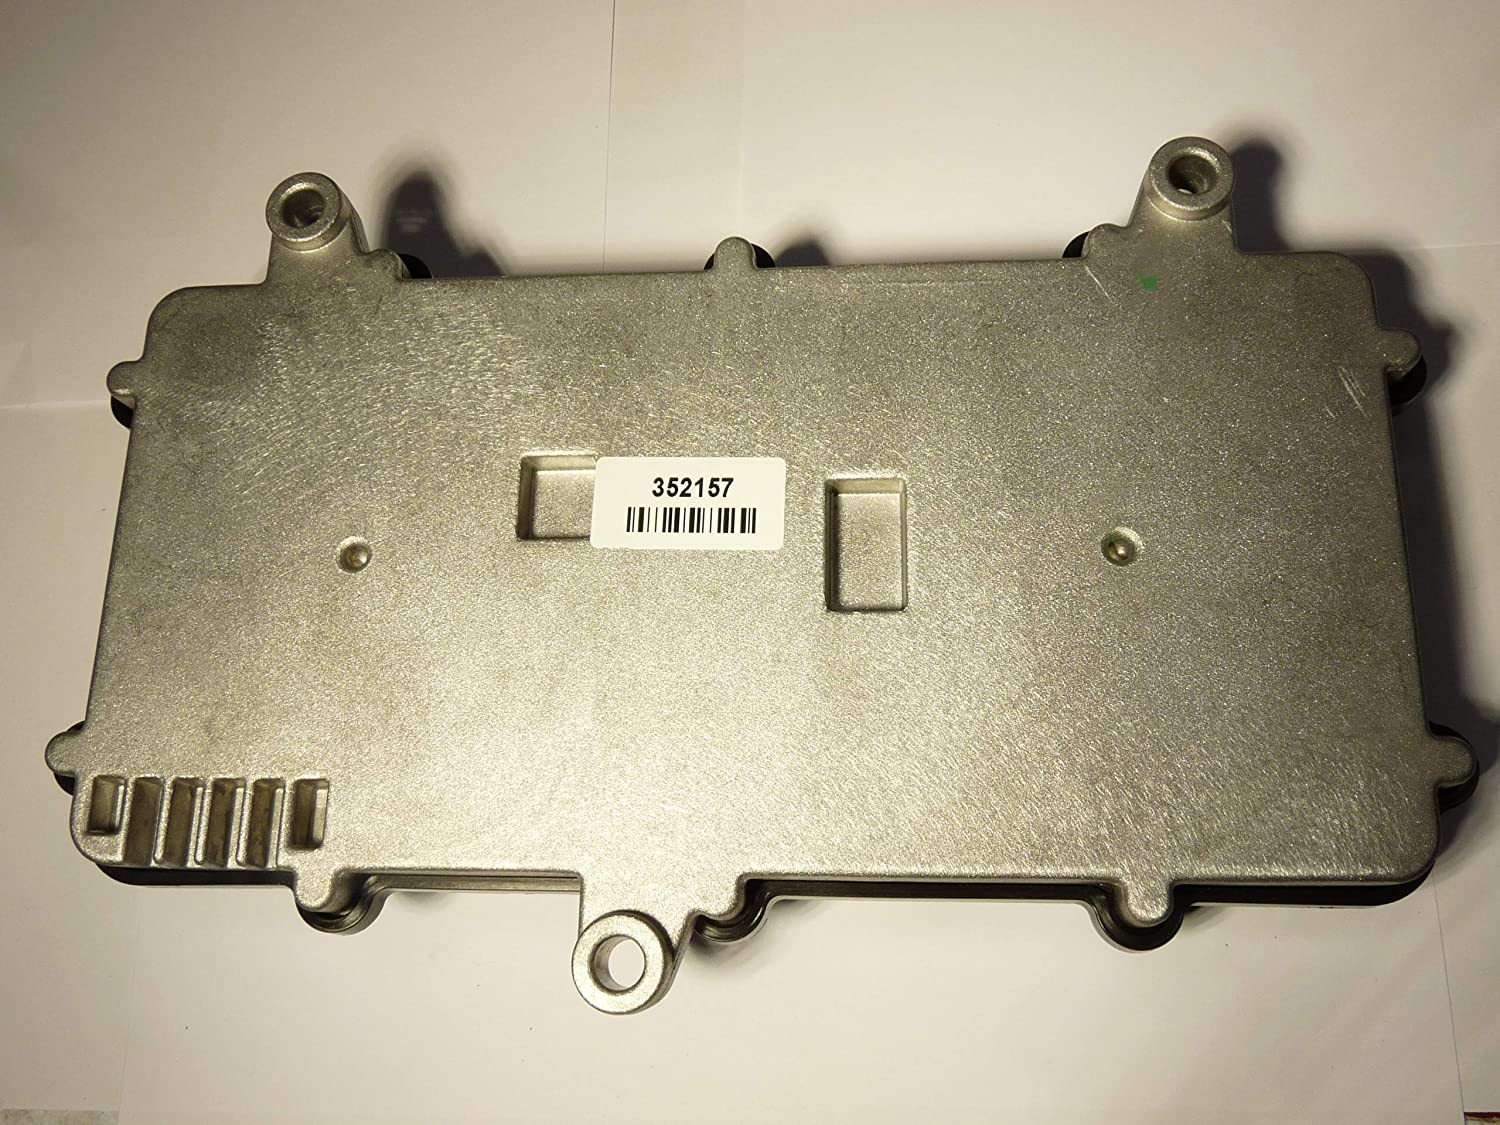 Freightliner M2 M-2 Chassis Module OEM CHM 06-75158-000 m2 chassis A66-03087-000